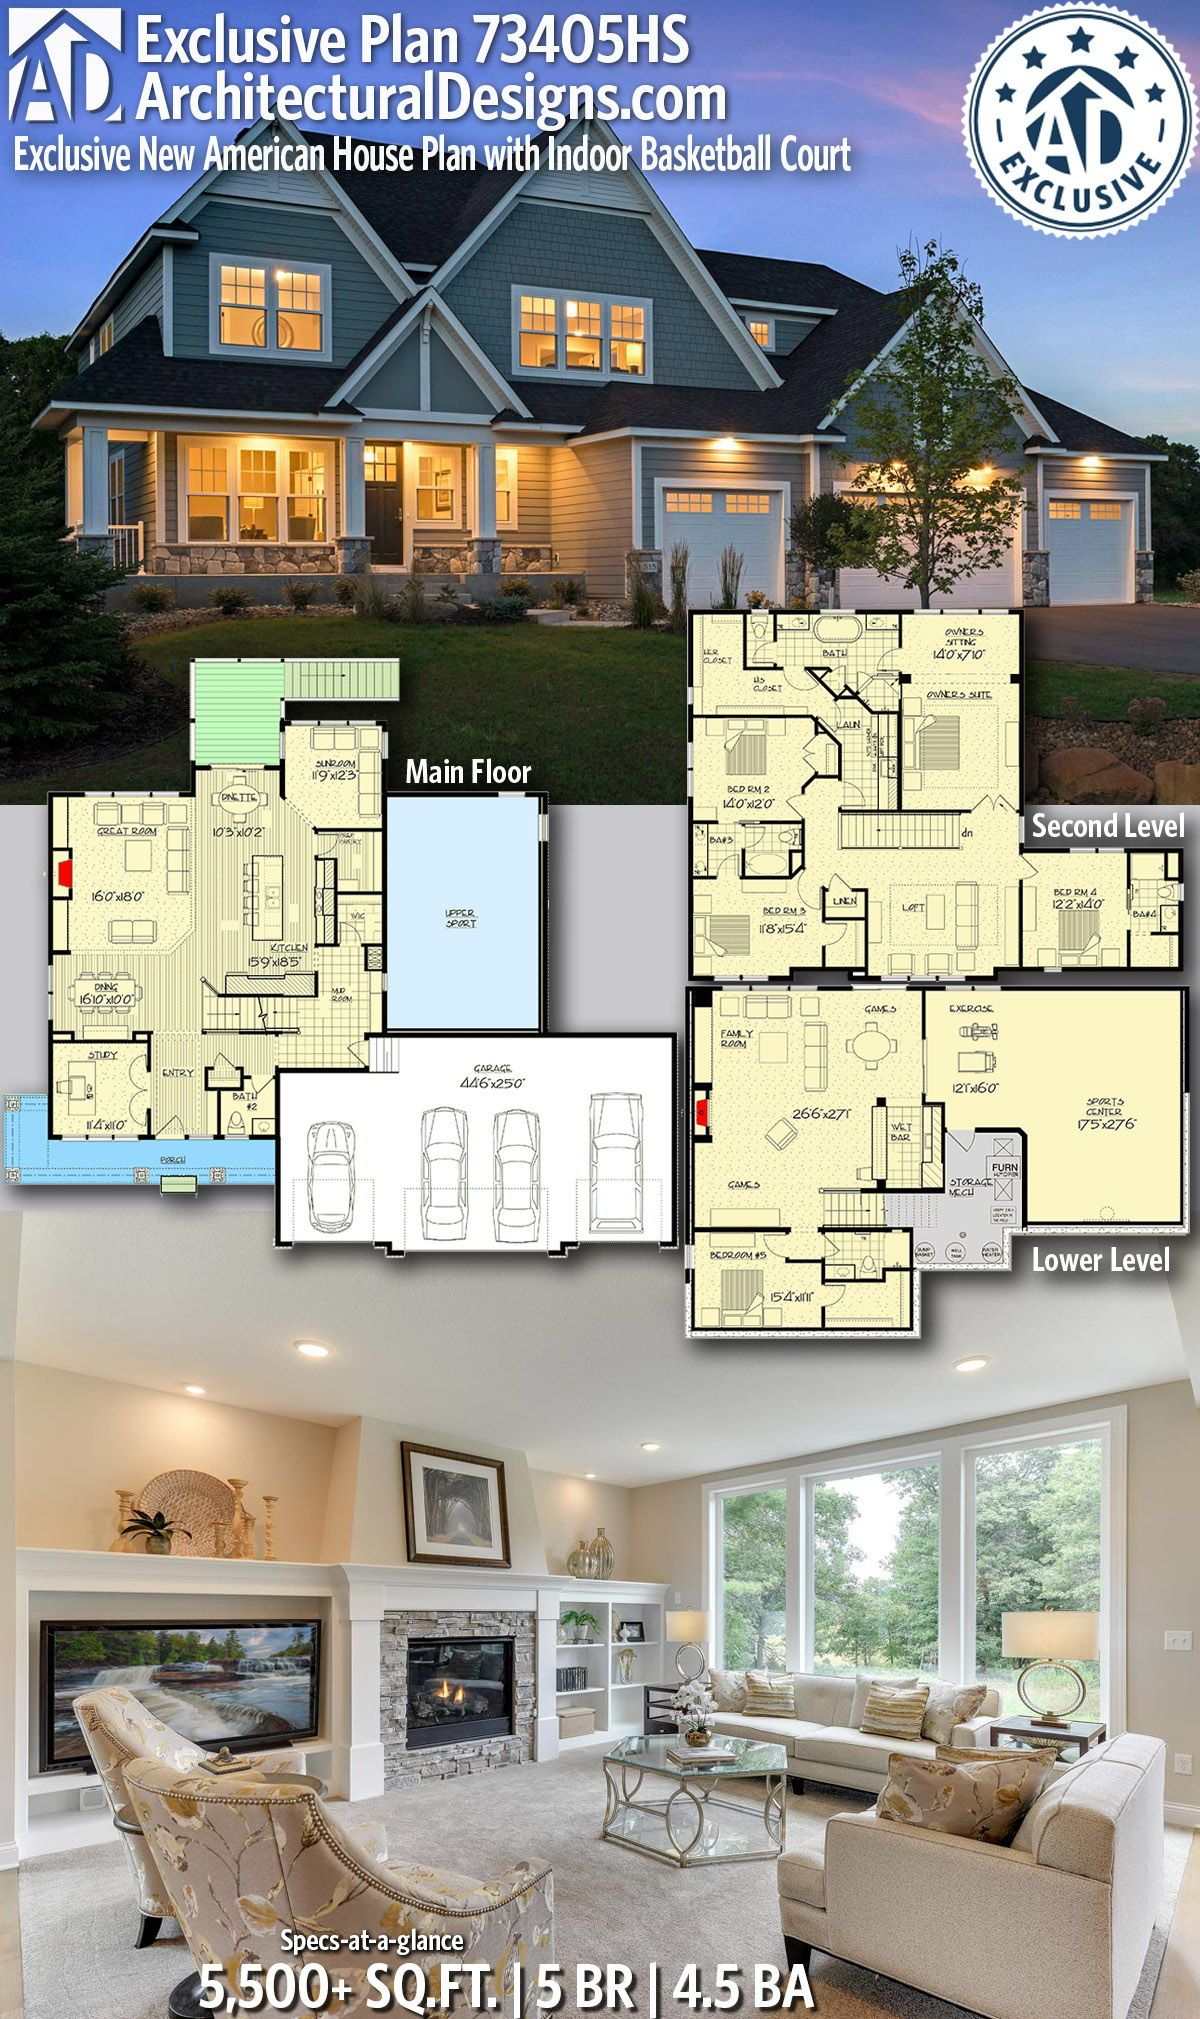 Plan 73405hs Exclusive New American House Plan With Indoor Basketball Court House Blueprints Mountain House Plans Architectural Design House Plans